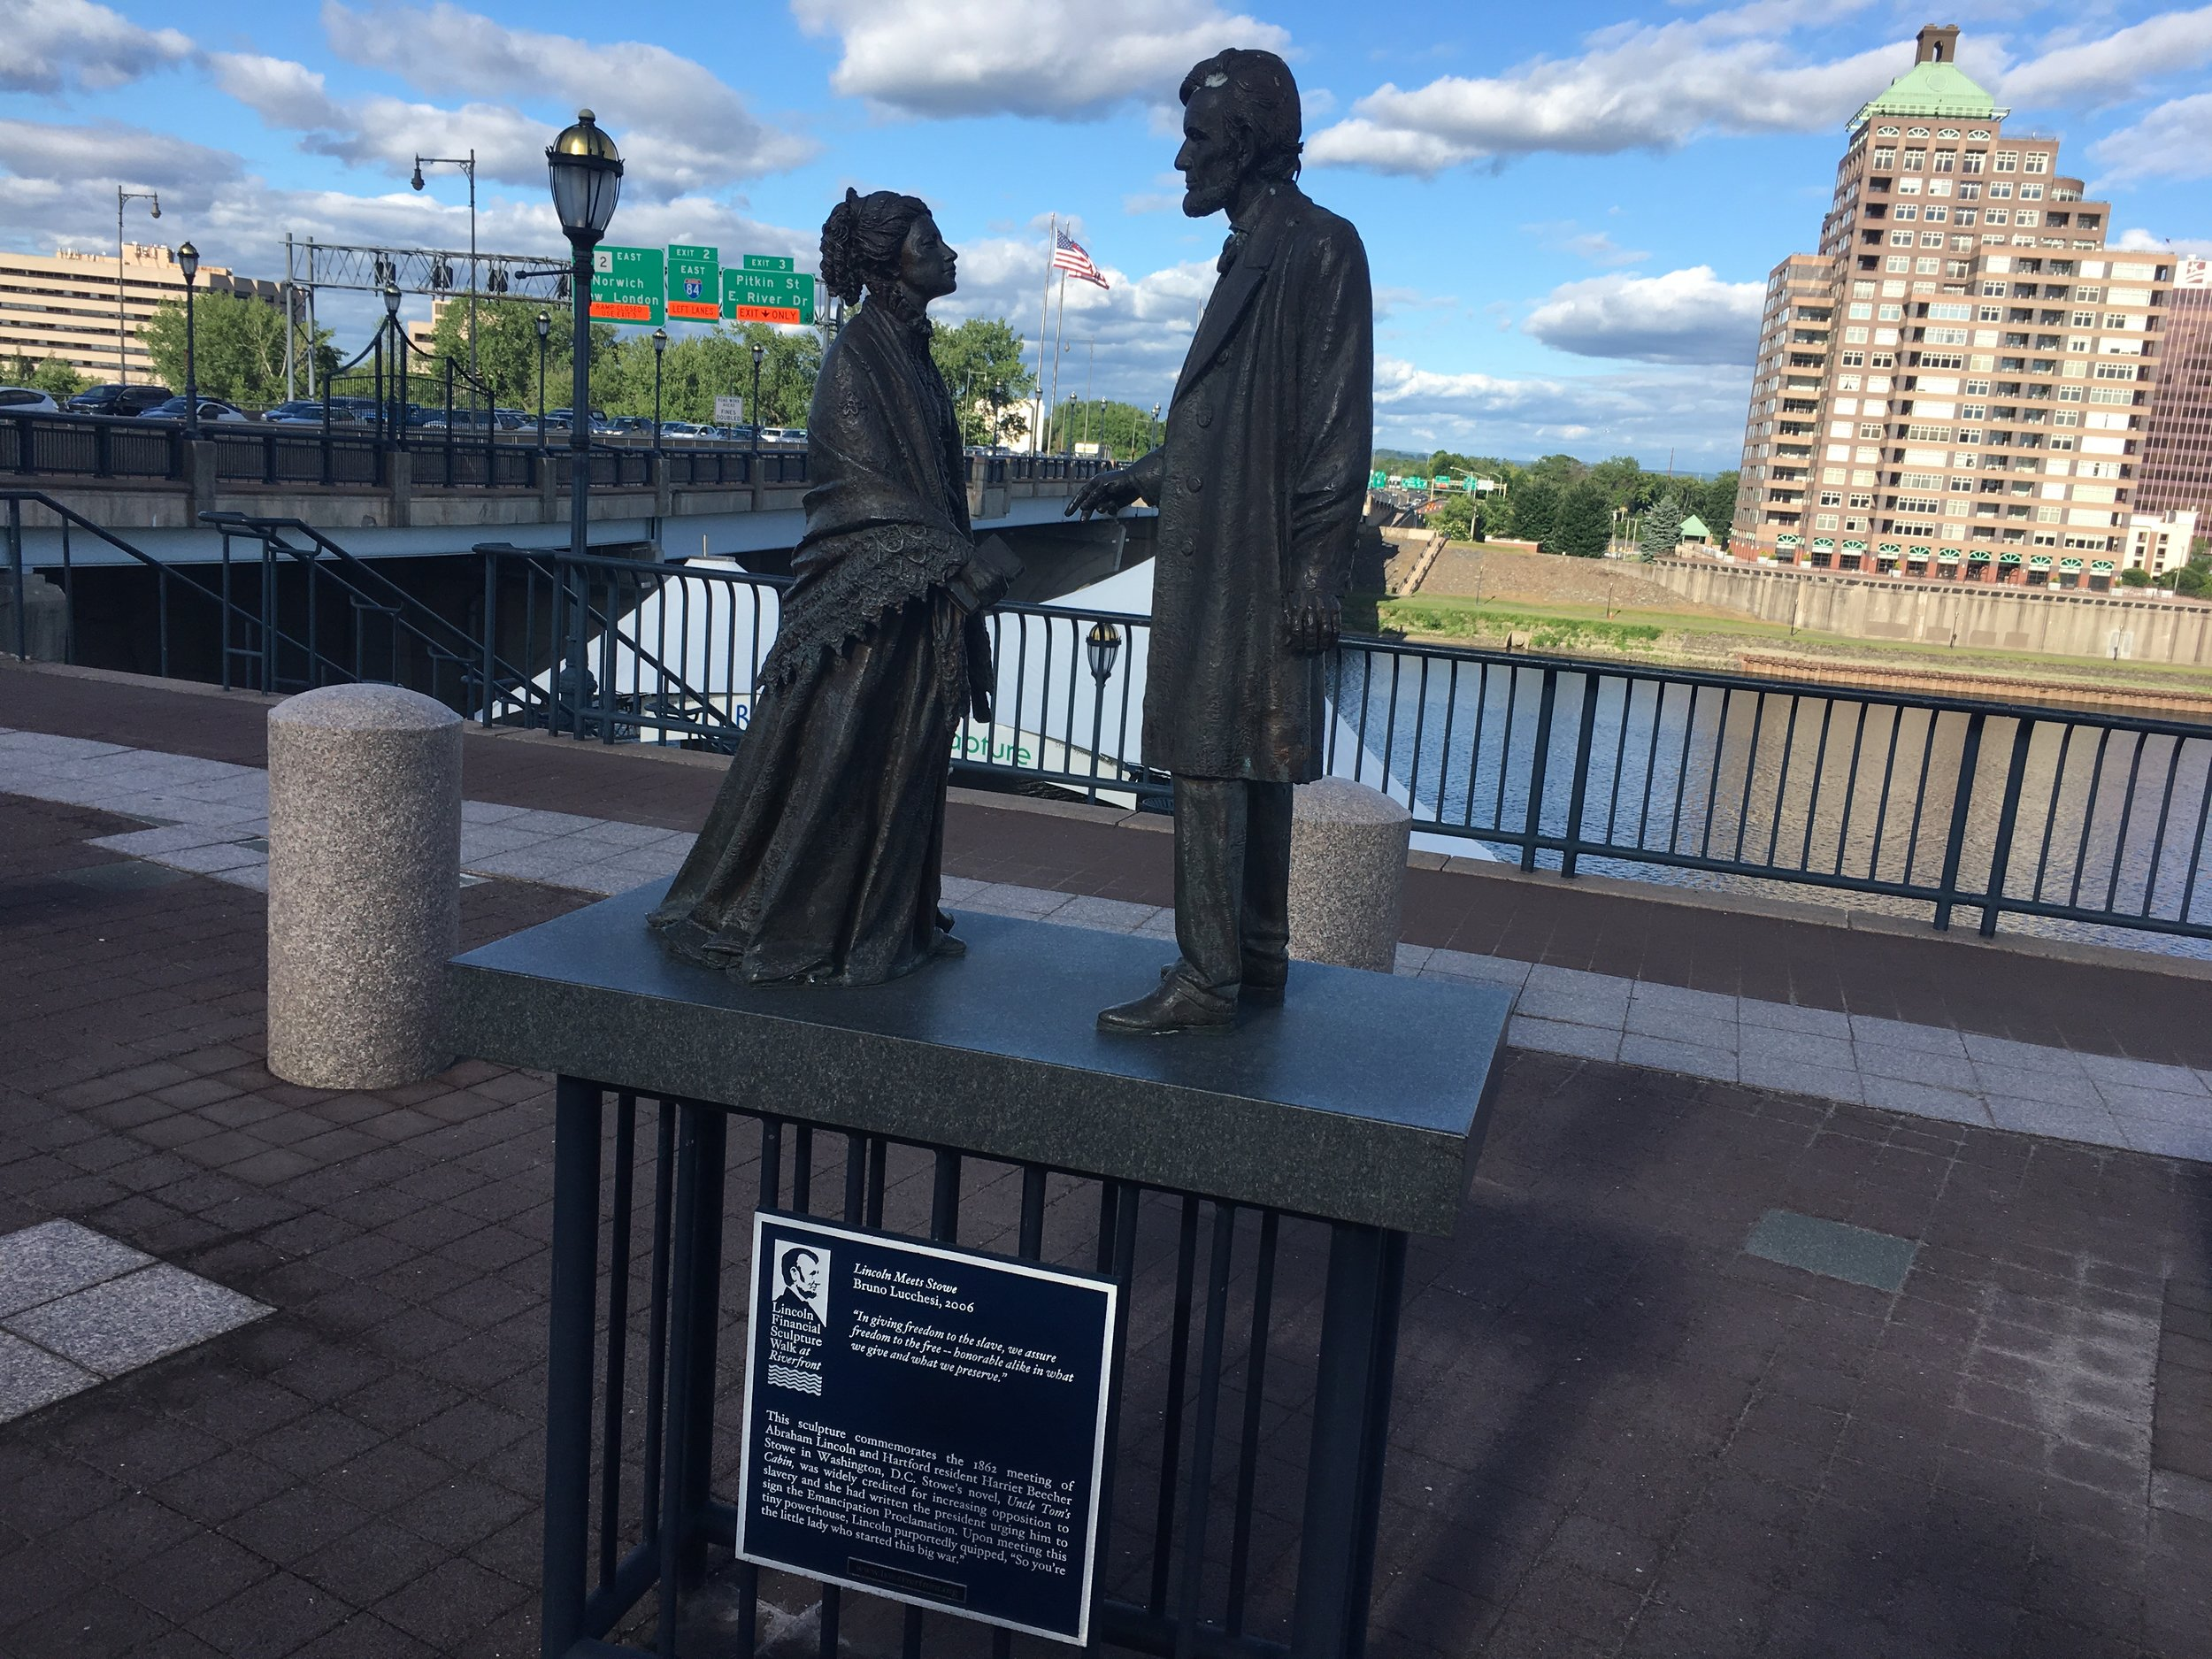 Commemorating a meeting between Lincoln and Hartford resident Harriet Beecher Stowe in D.C.